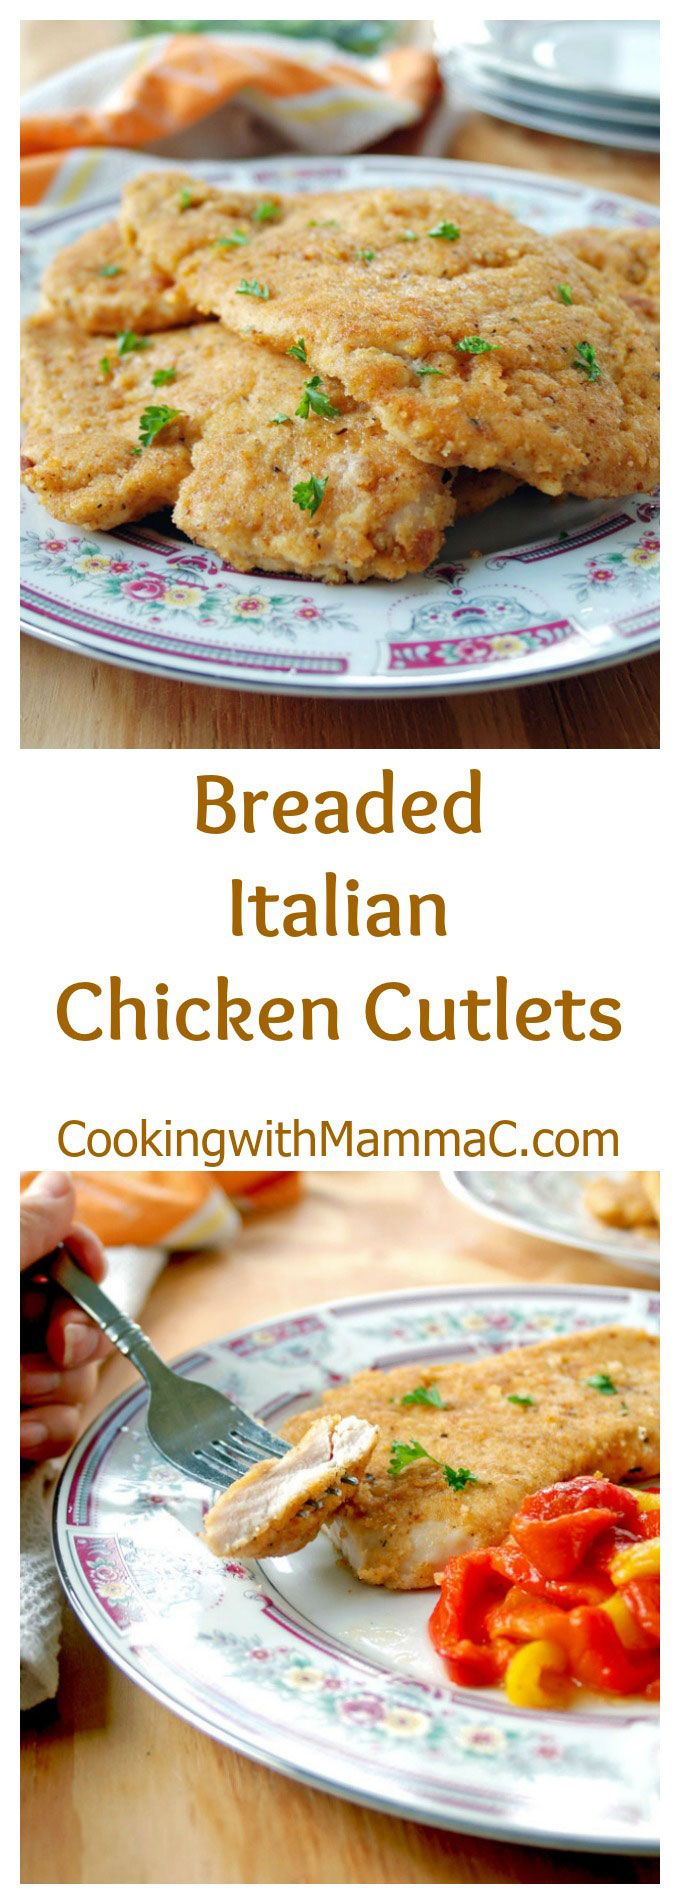 Breaded Italian Chicken Cutlets Are So Juicy And Tender! My Recipe Is Based  On My